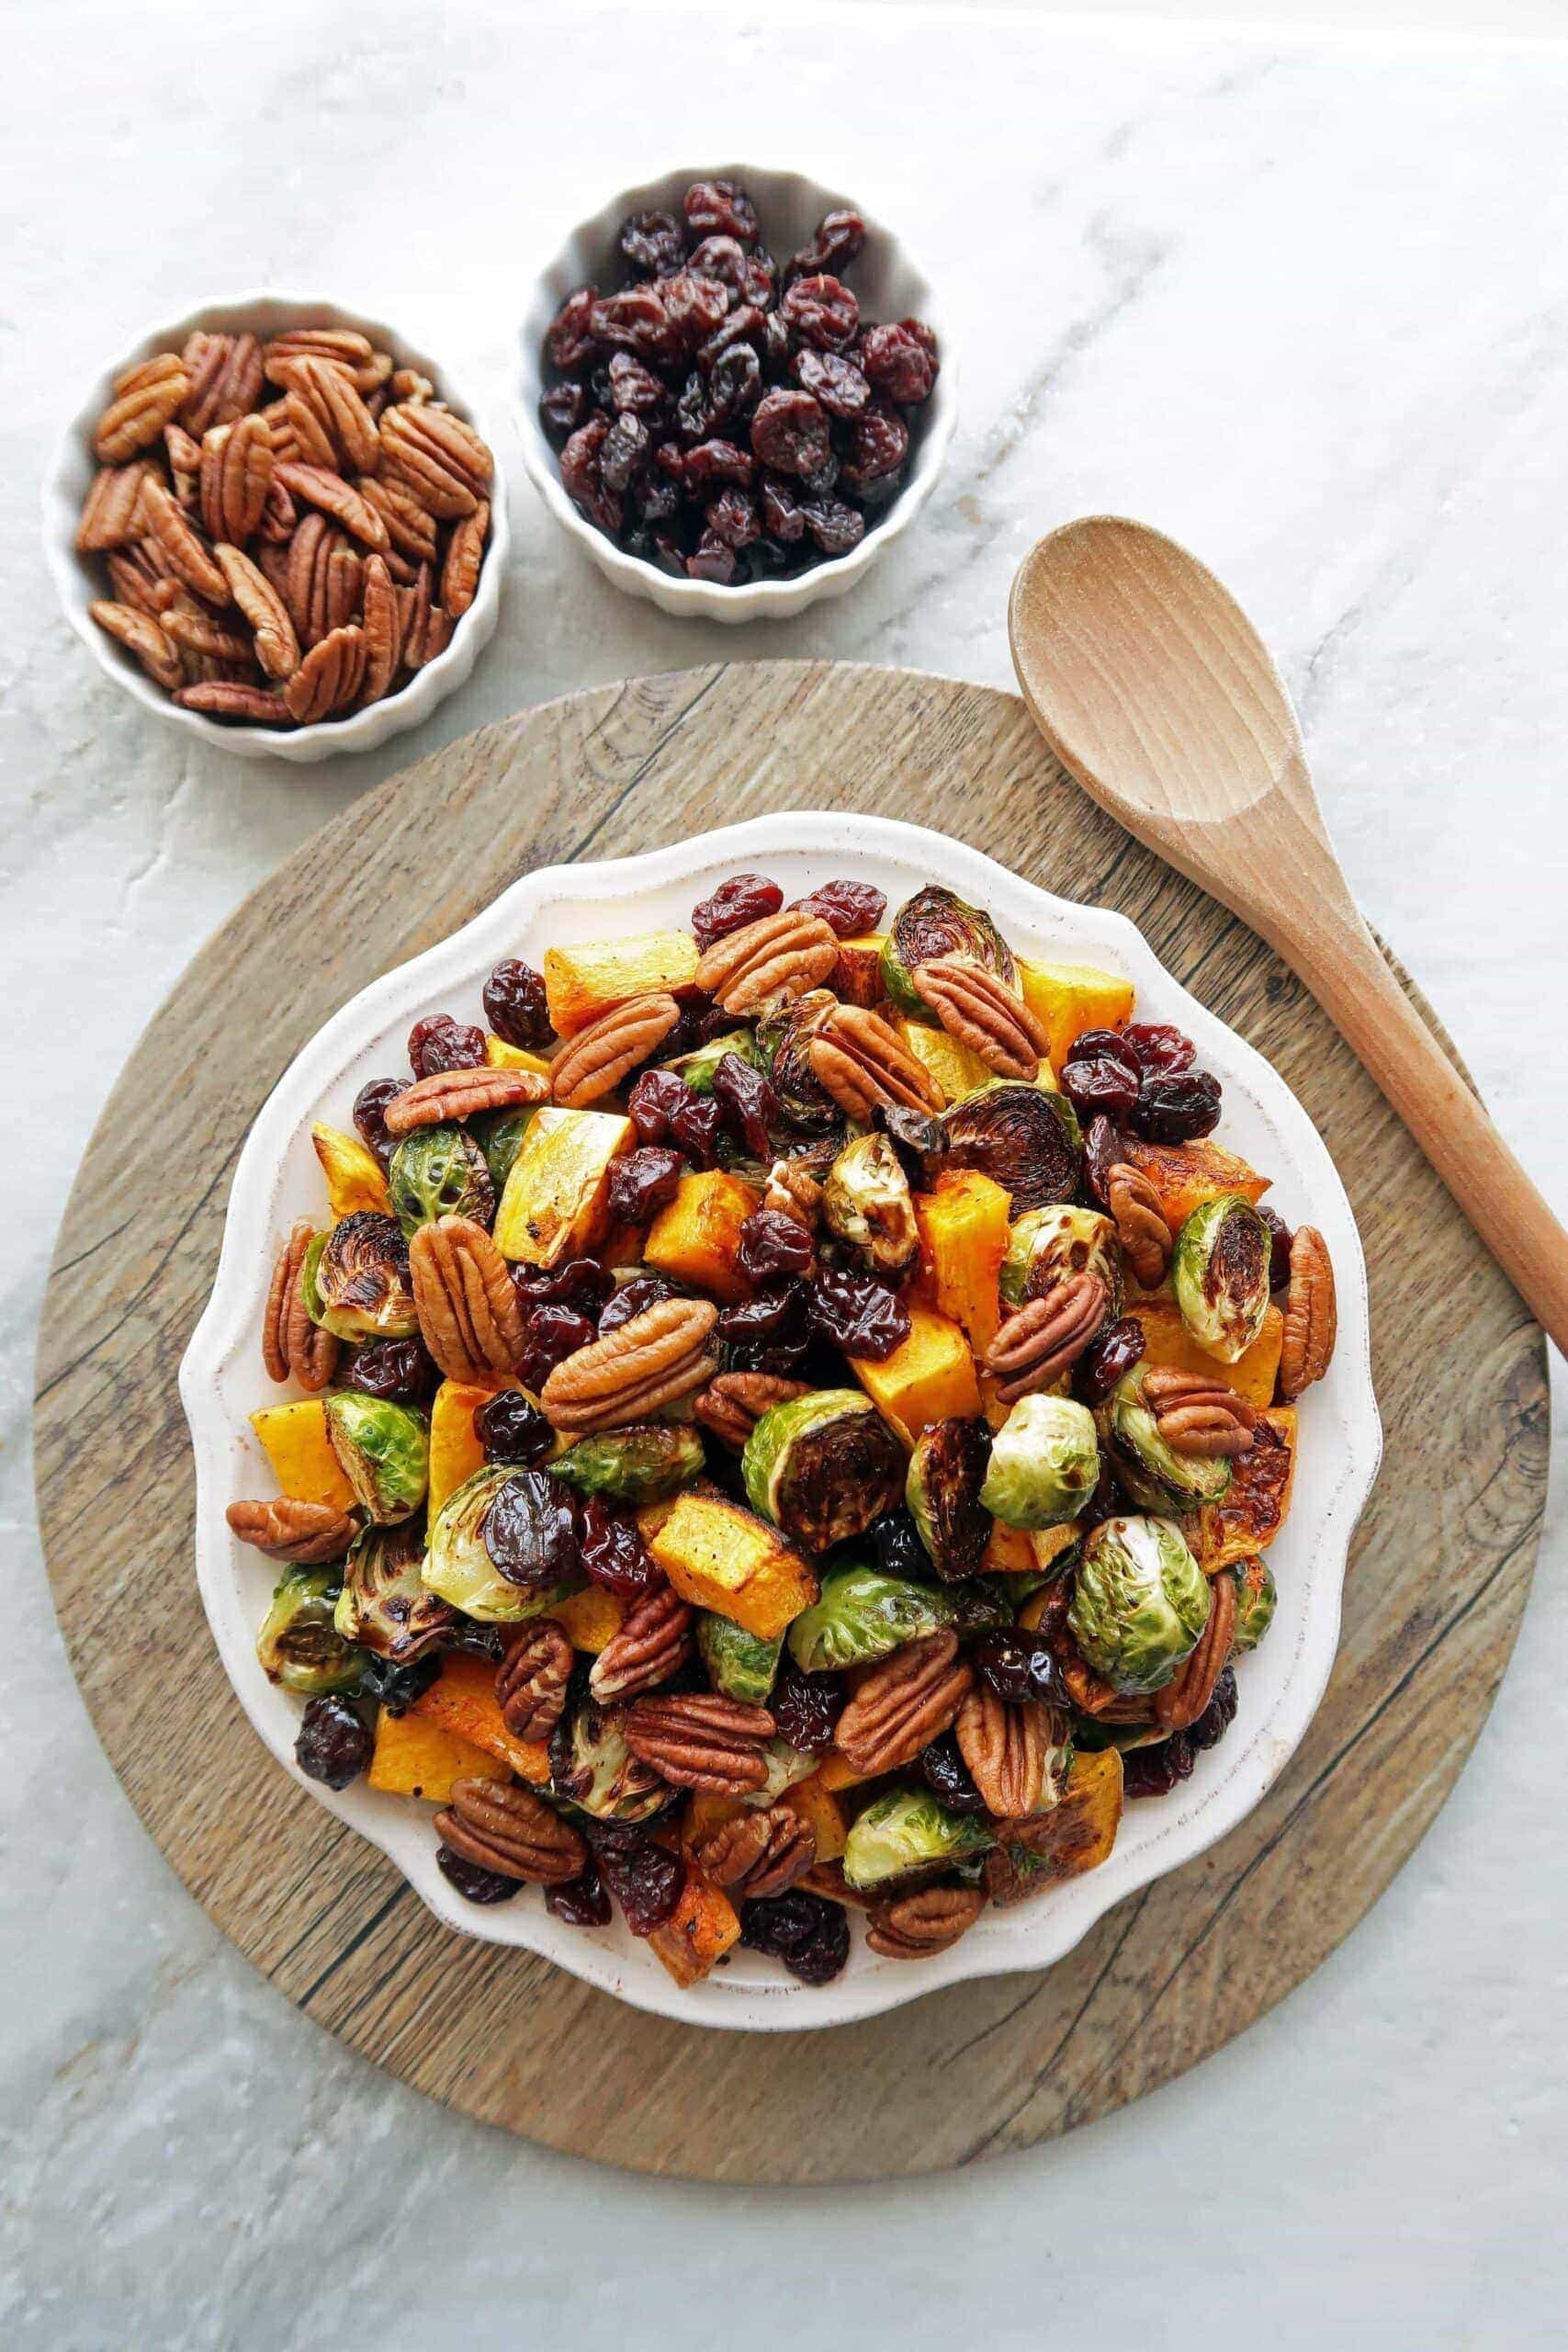 Roasted Butternut Squash and Brussels Sprouts with Pecans and Dried Cherries